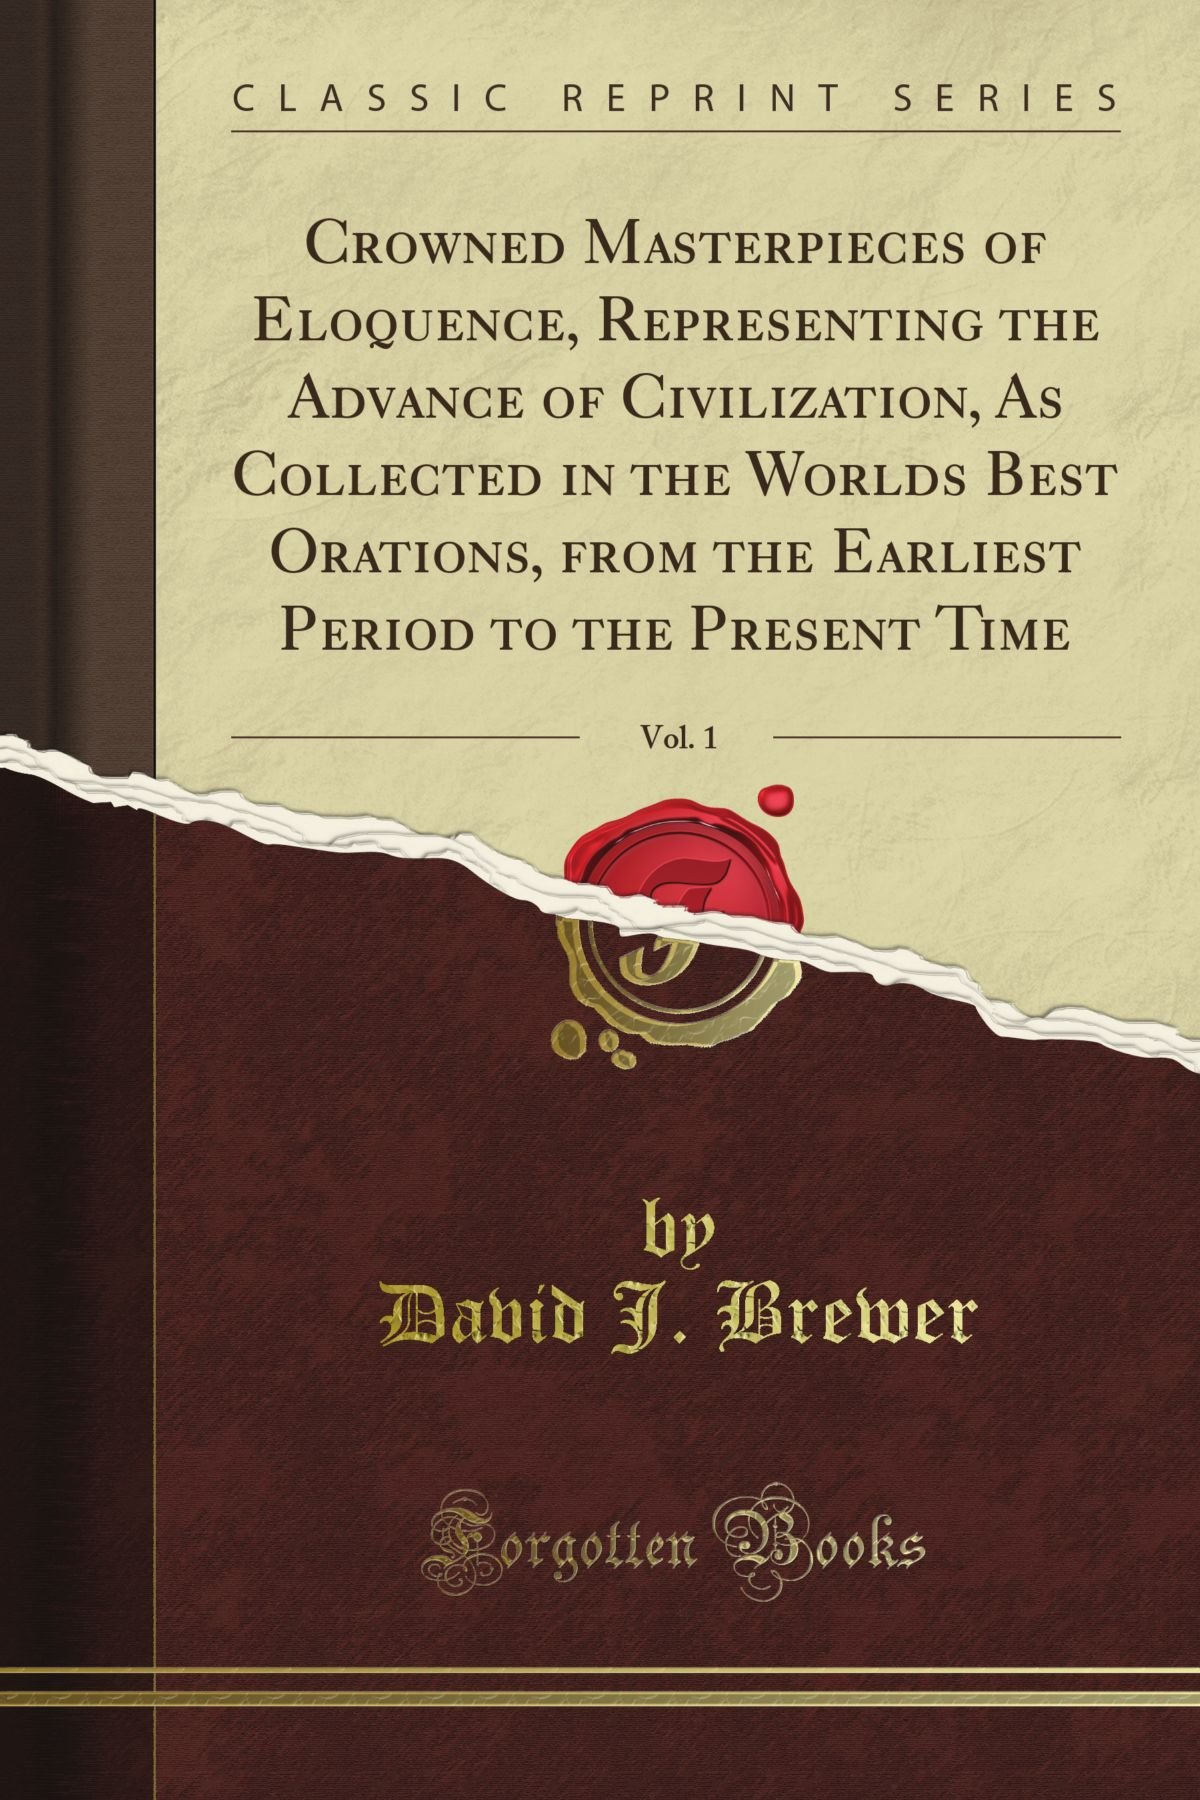 Crowned Masterpieces of Eloquence, Representing the Advance of Civilization, As Collected in the World's Best Orations, from the Earliest Period to the Present Time, Vol. 1 (Classic Reprint) pdf